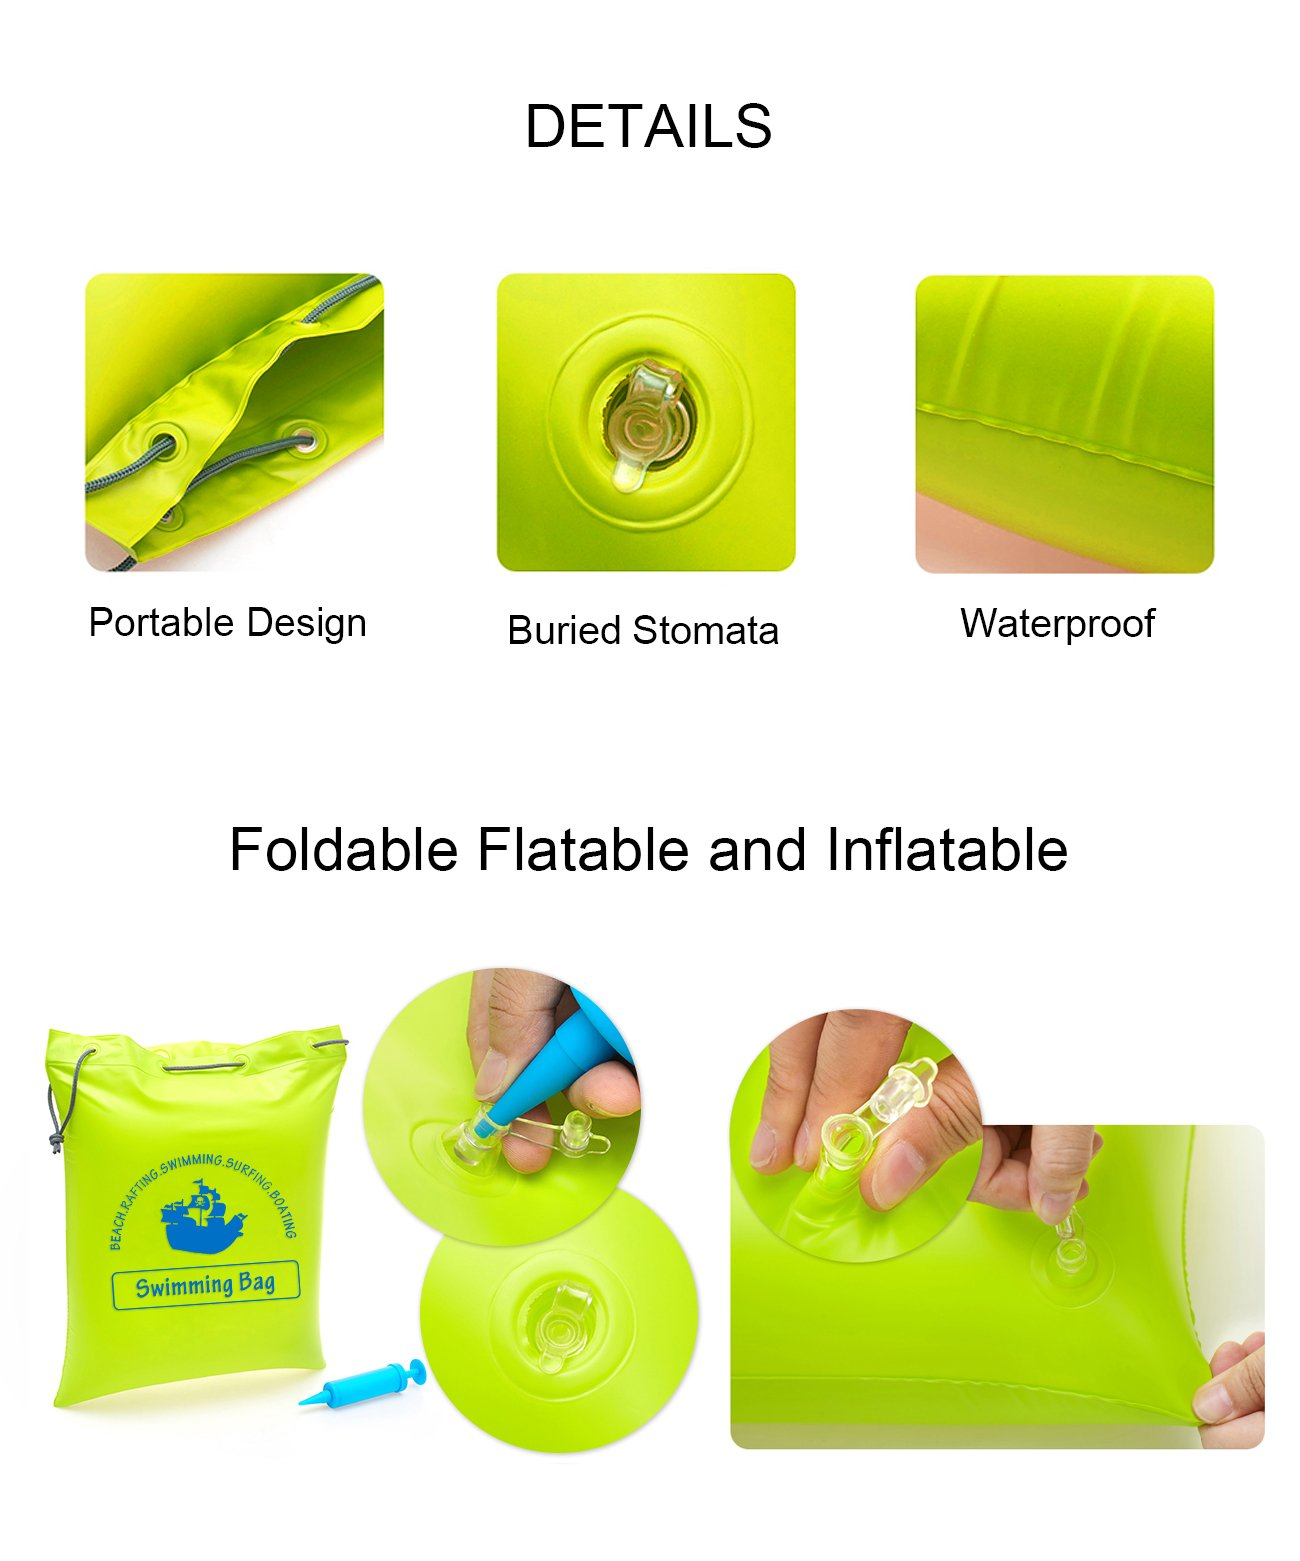 ZEPST Waterproof Swimming Bag Inflatable, Multi-purpose Carrying Bag Dry Bag and Air Pillow Cushion for the Beach Backpacking Swimming Kayaking and Outdoor Camping (Green)